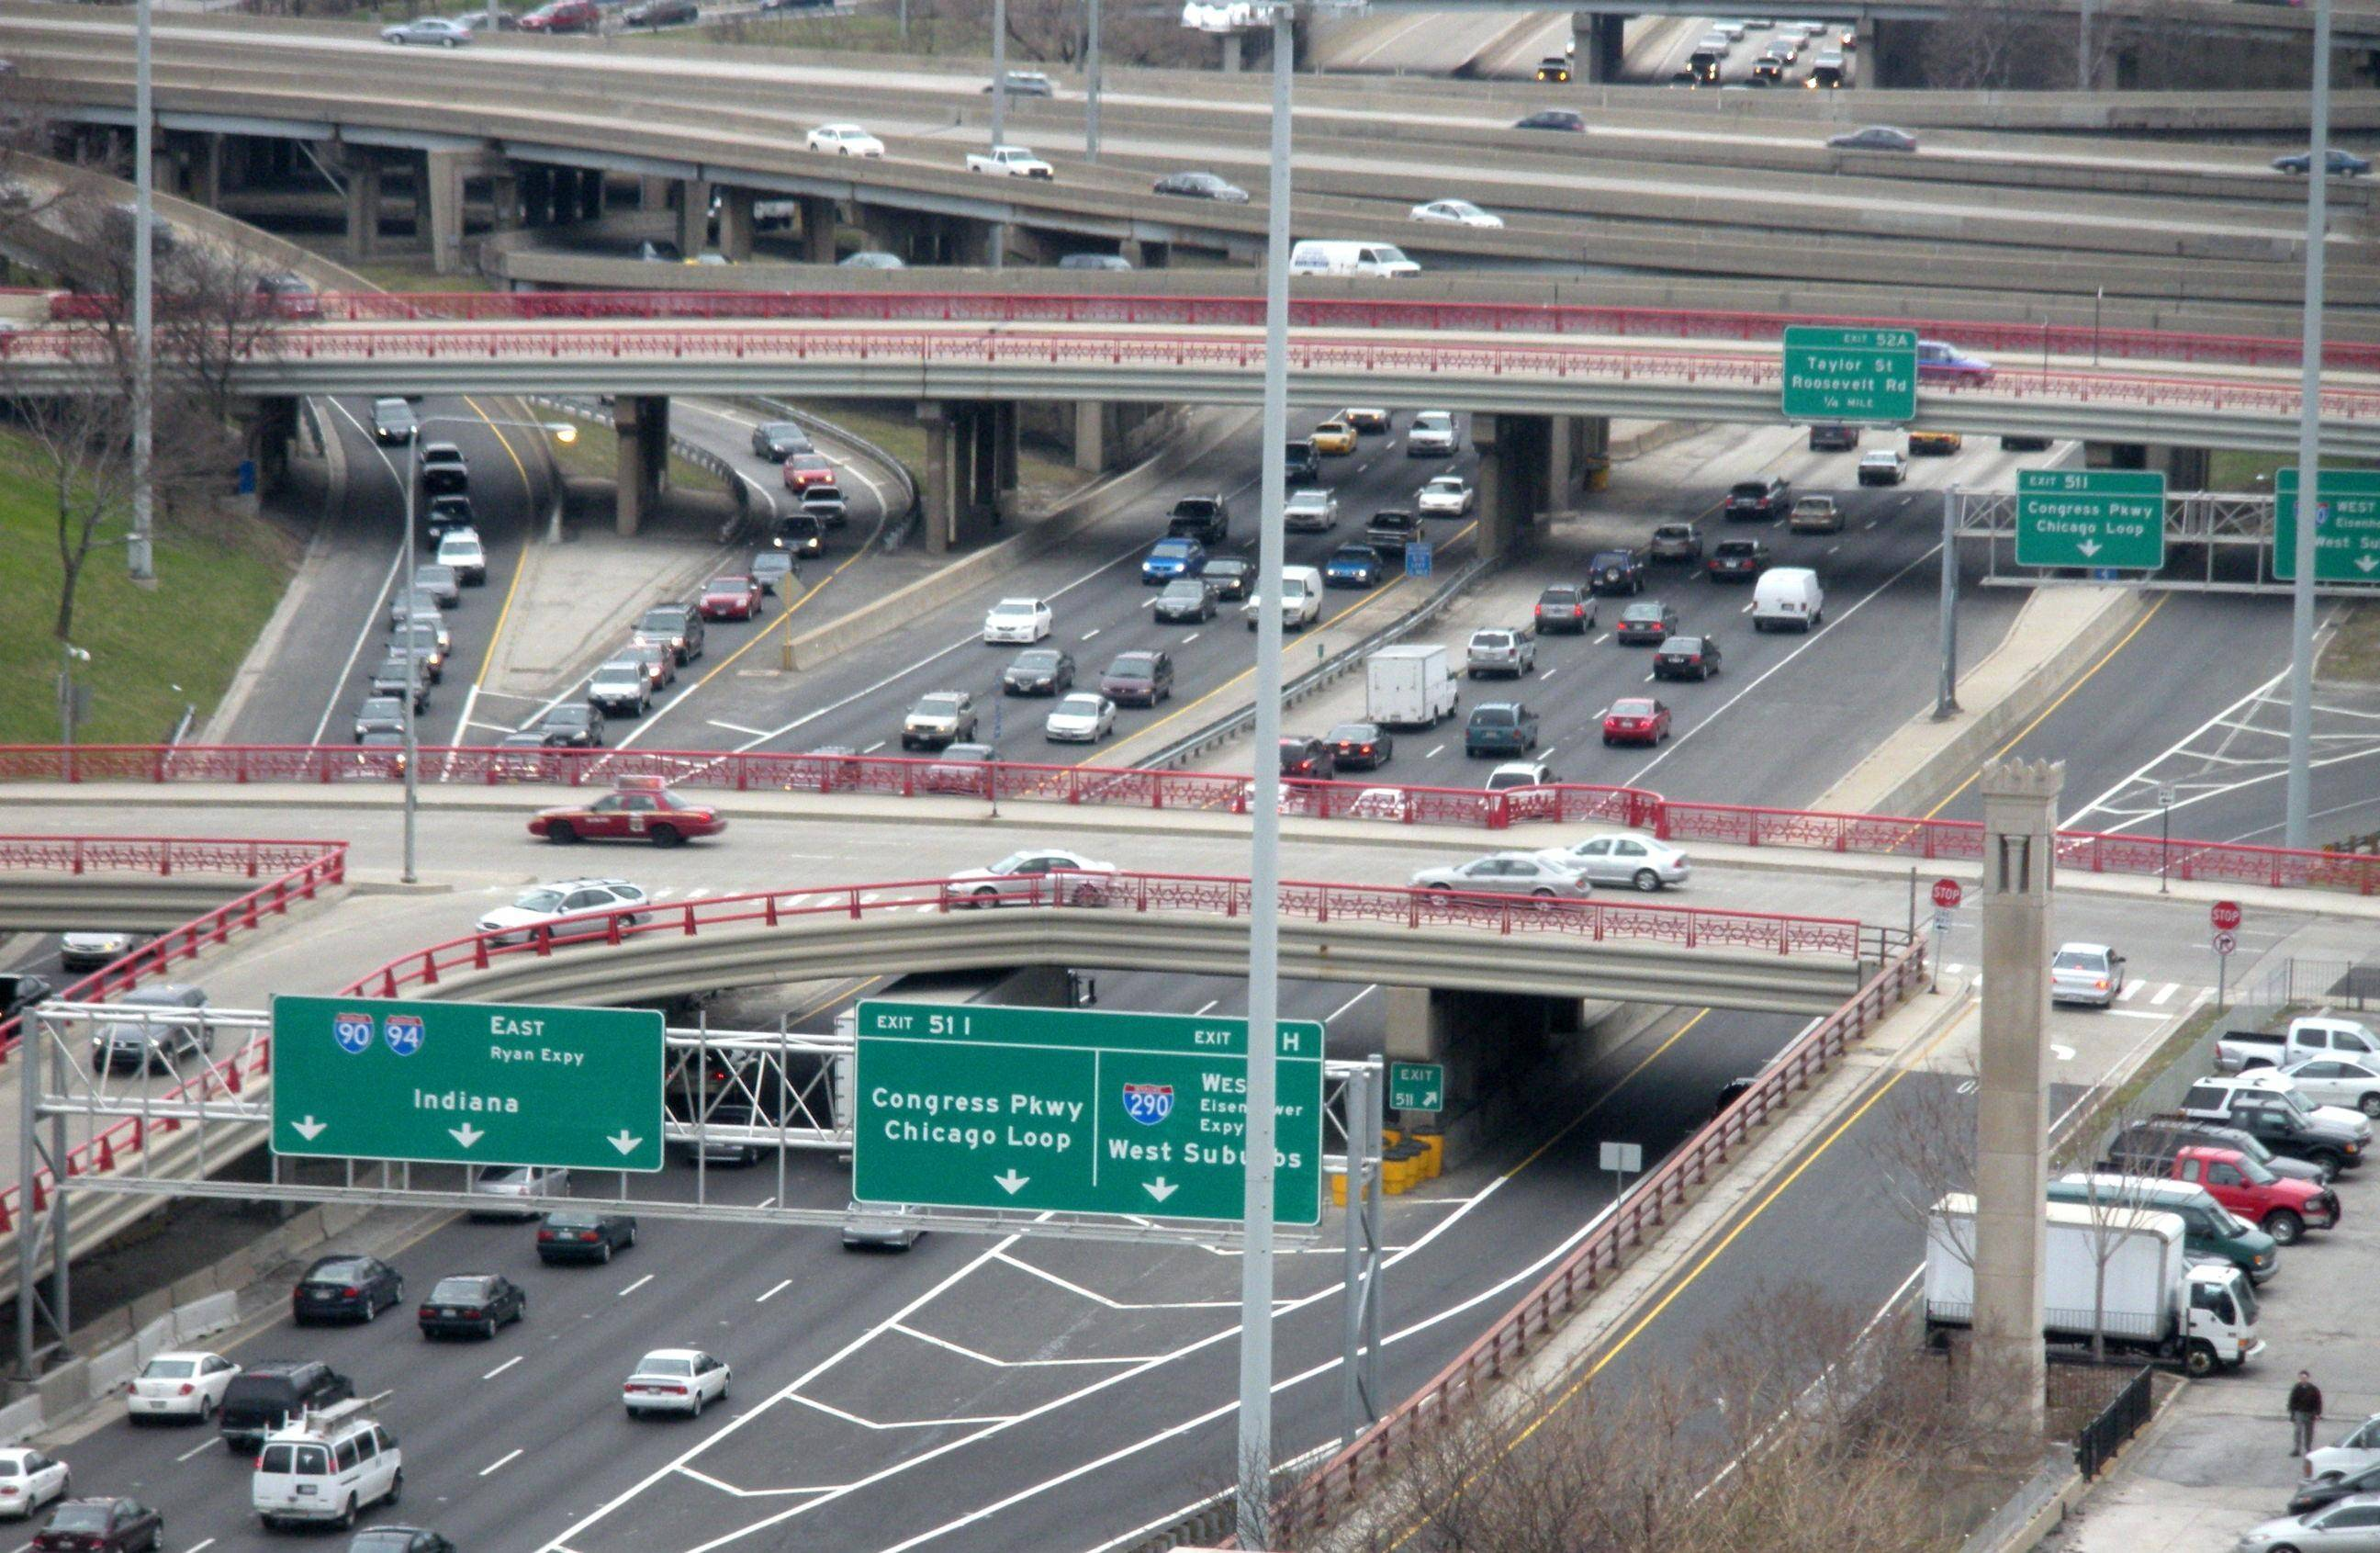 IDOT's updated roadwork plan shows funding constraints